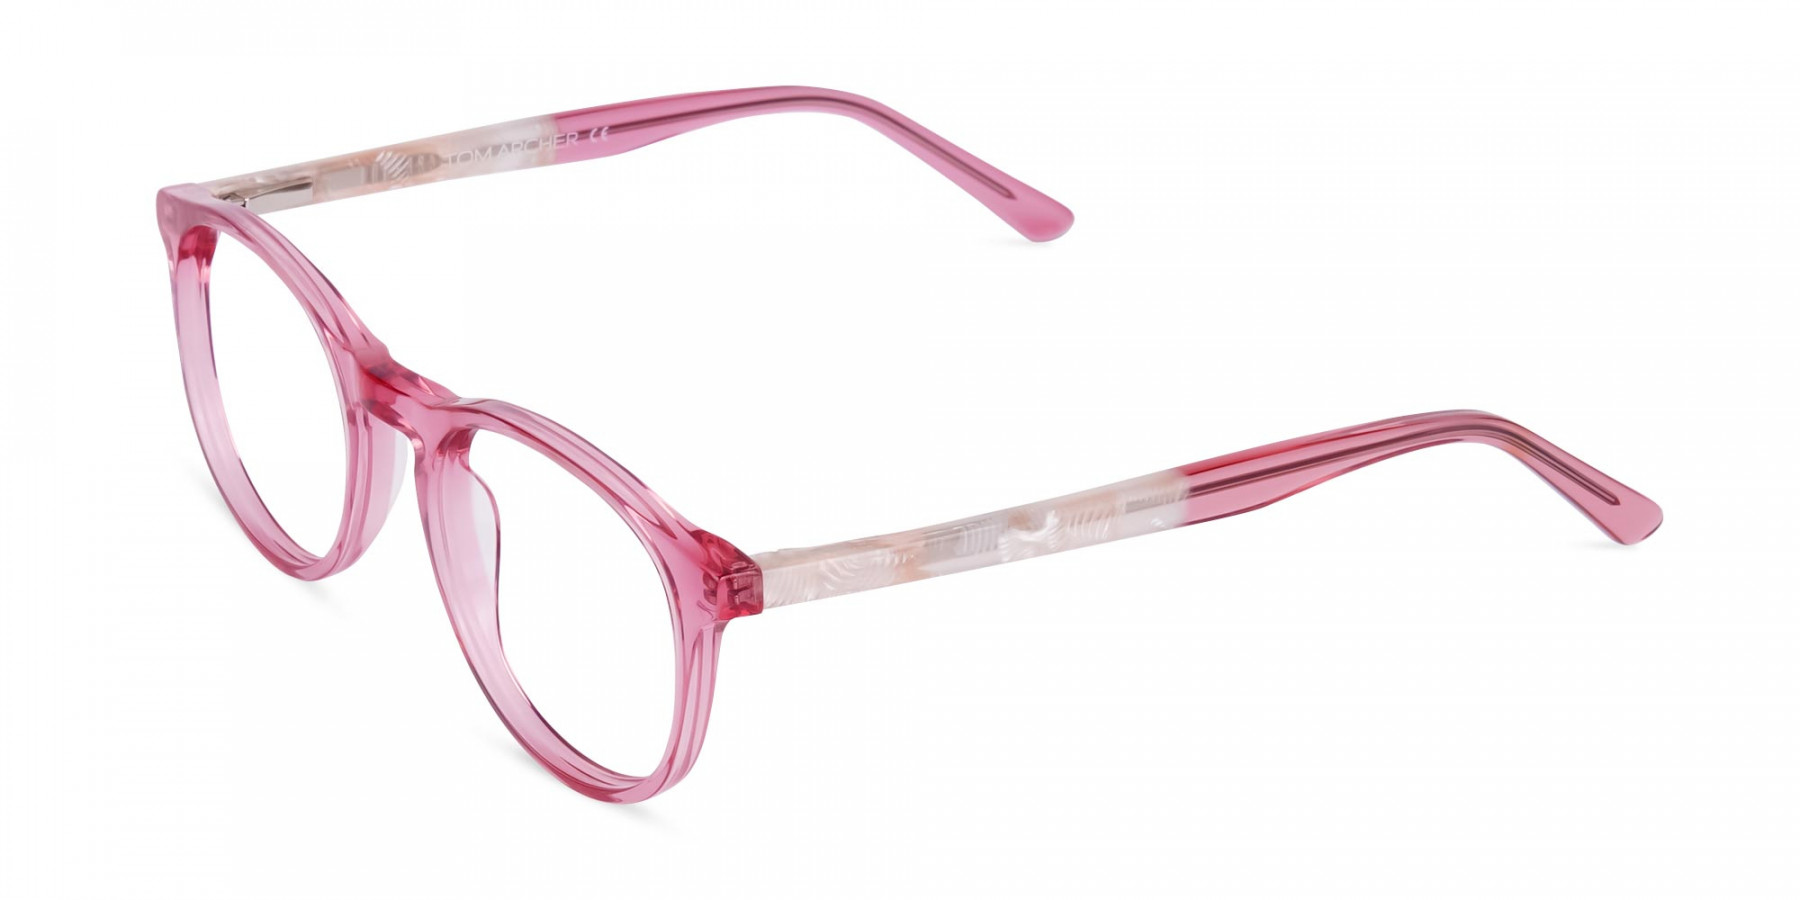 Crystal-and-Pink-Round-Glasses-Frame-1